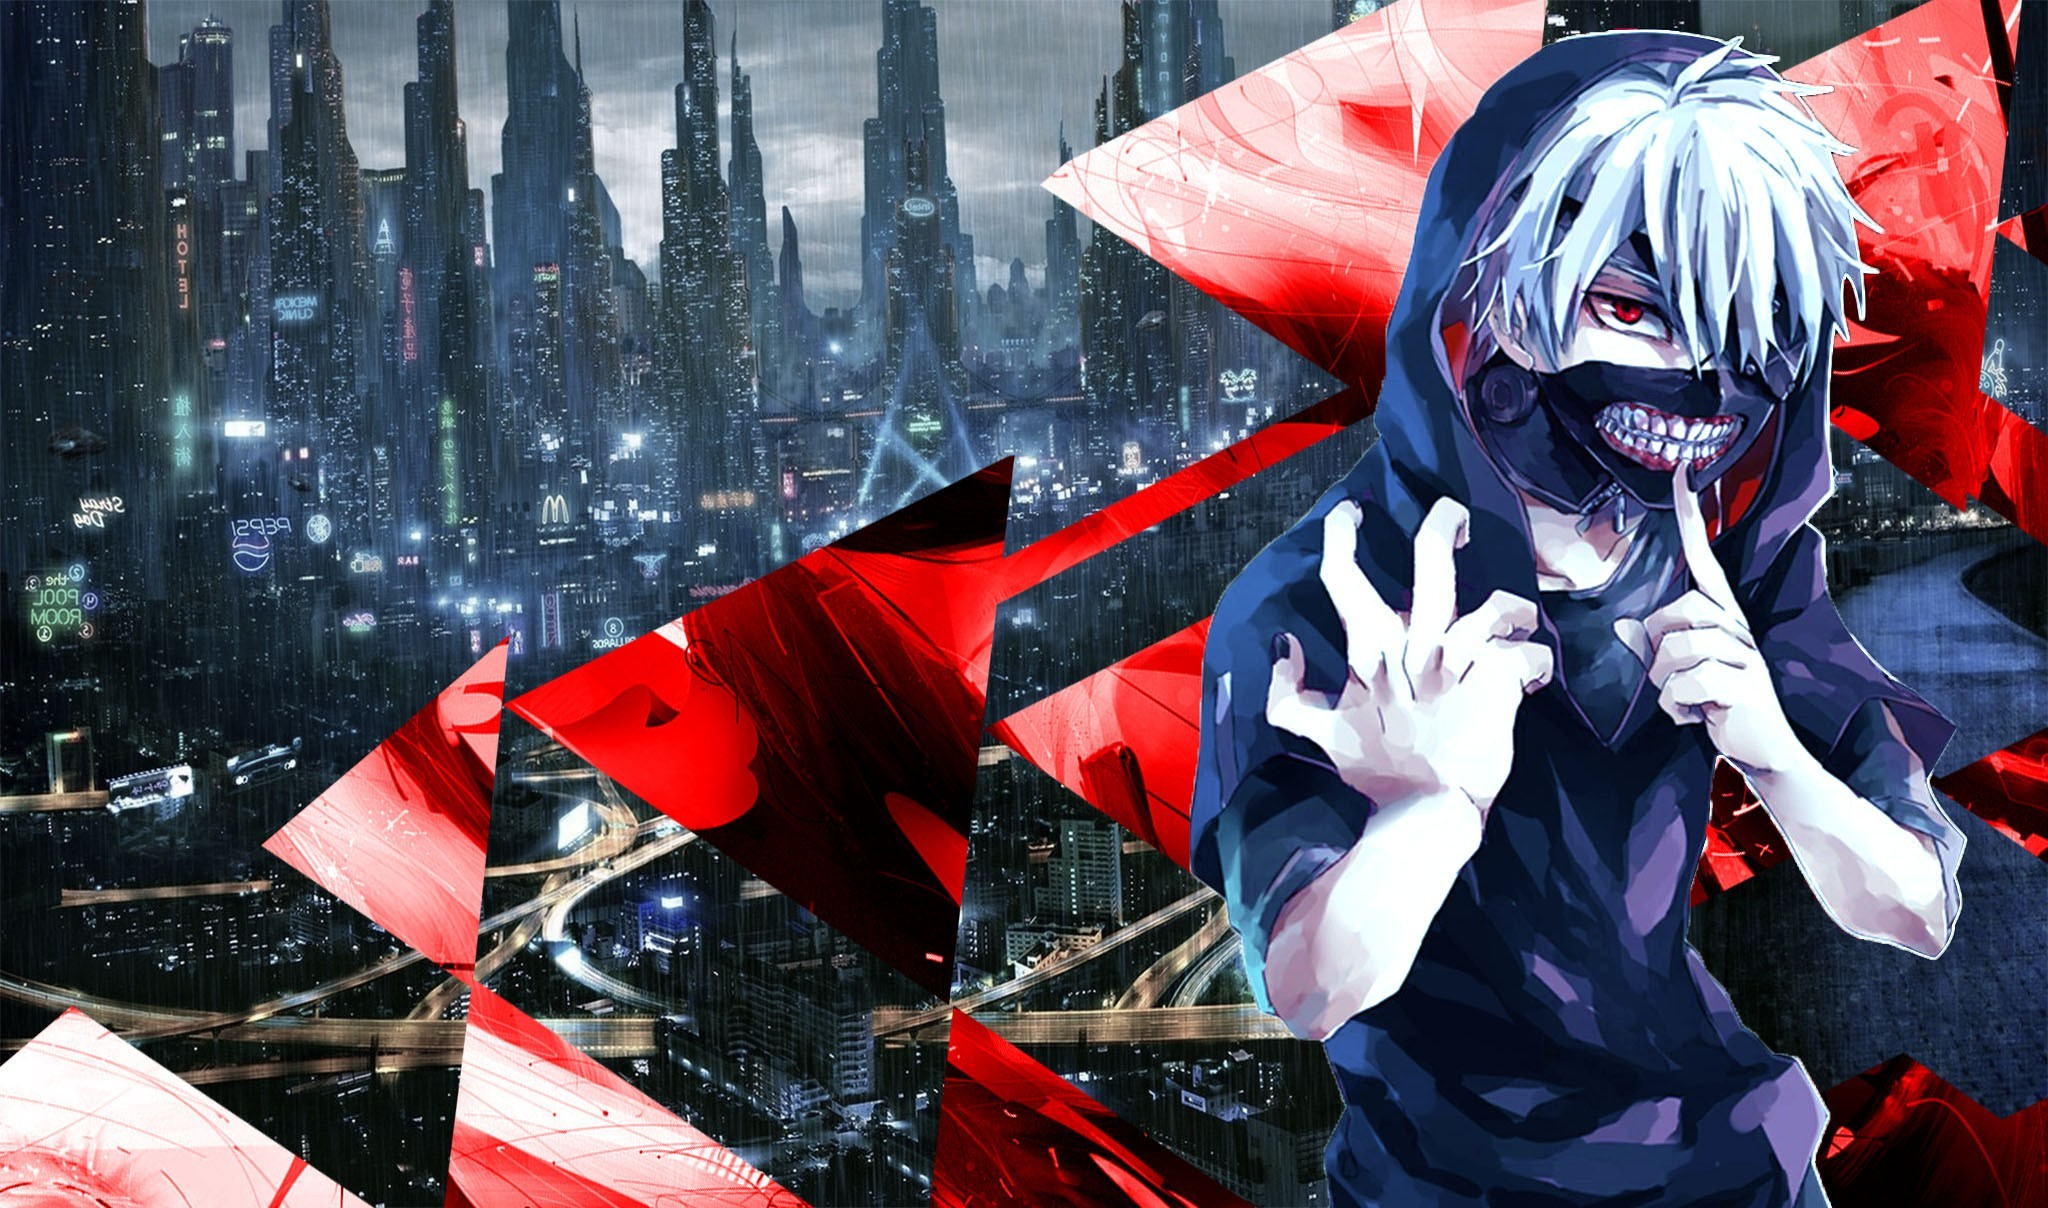 Tokyo ghoul re wallpaper 83 images - Anime mobile wallpaper ...